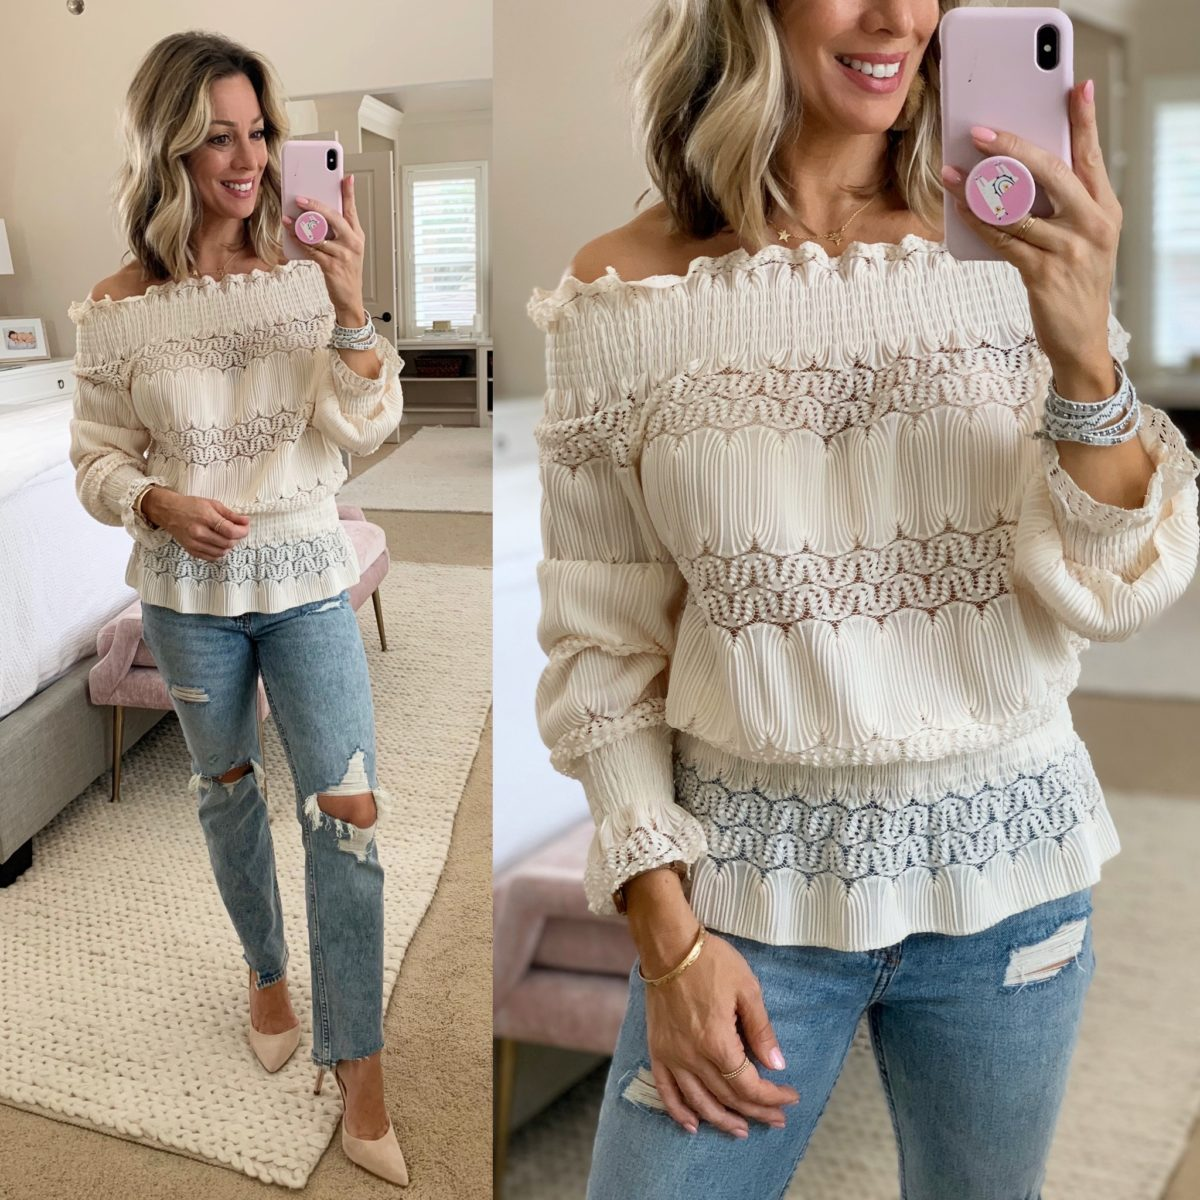 Off Shoulder Peplum Blouse, Distressed Mom Jeans, Blush Heels